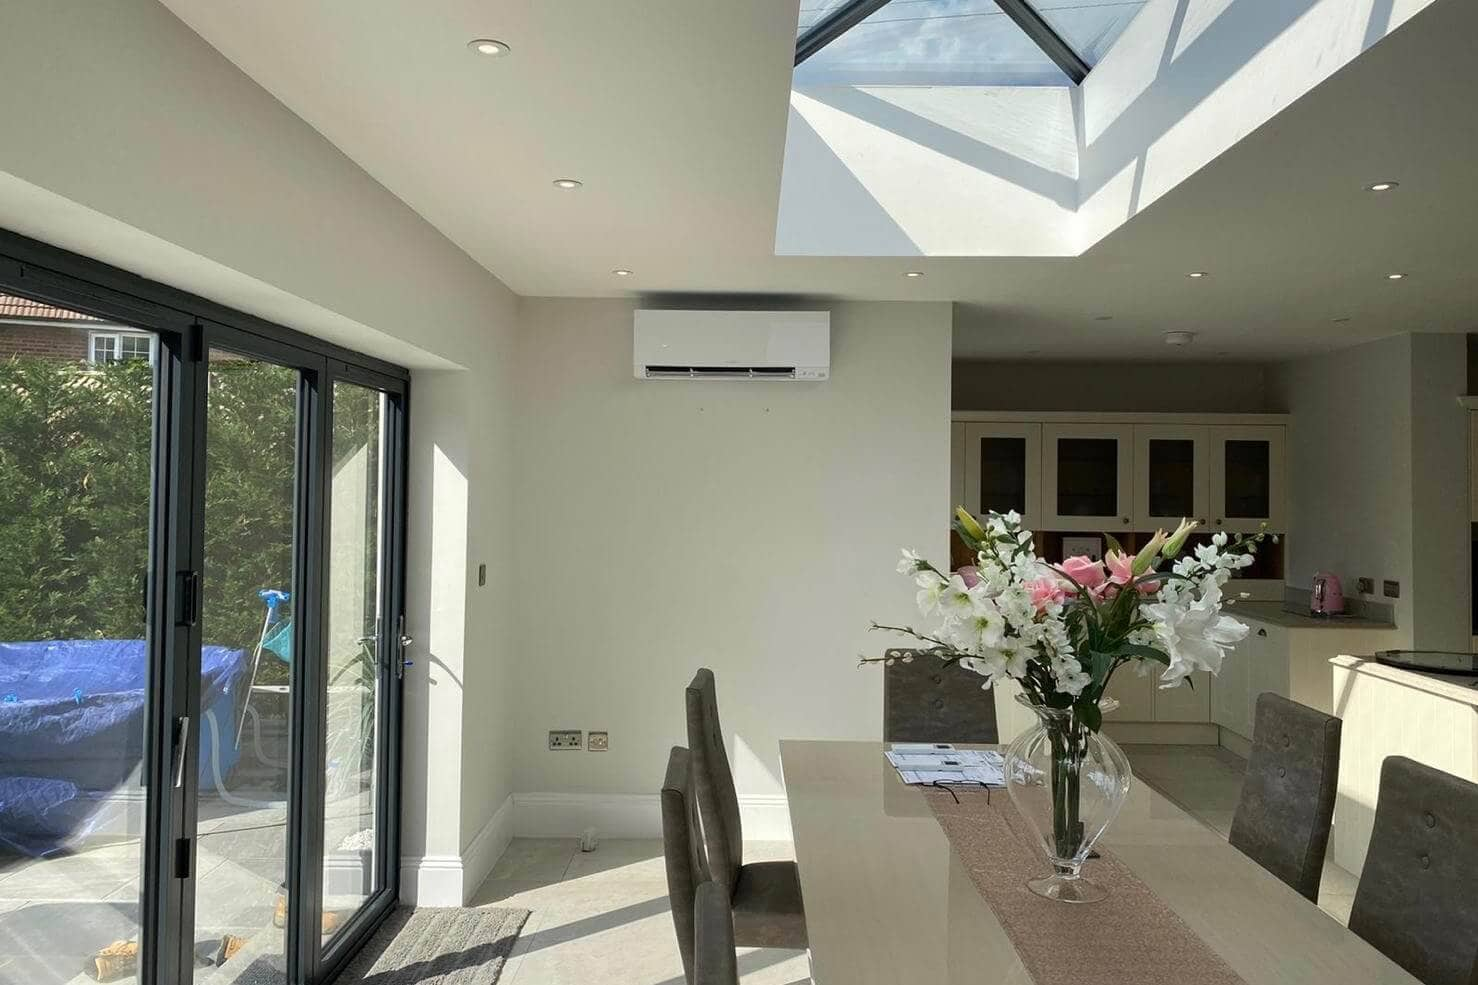 SubCoolFM wall mounted air conditioning in Staines kitchen living space extension showing end of extension by dining area and windows